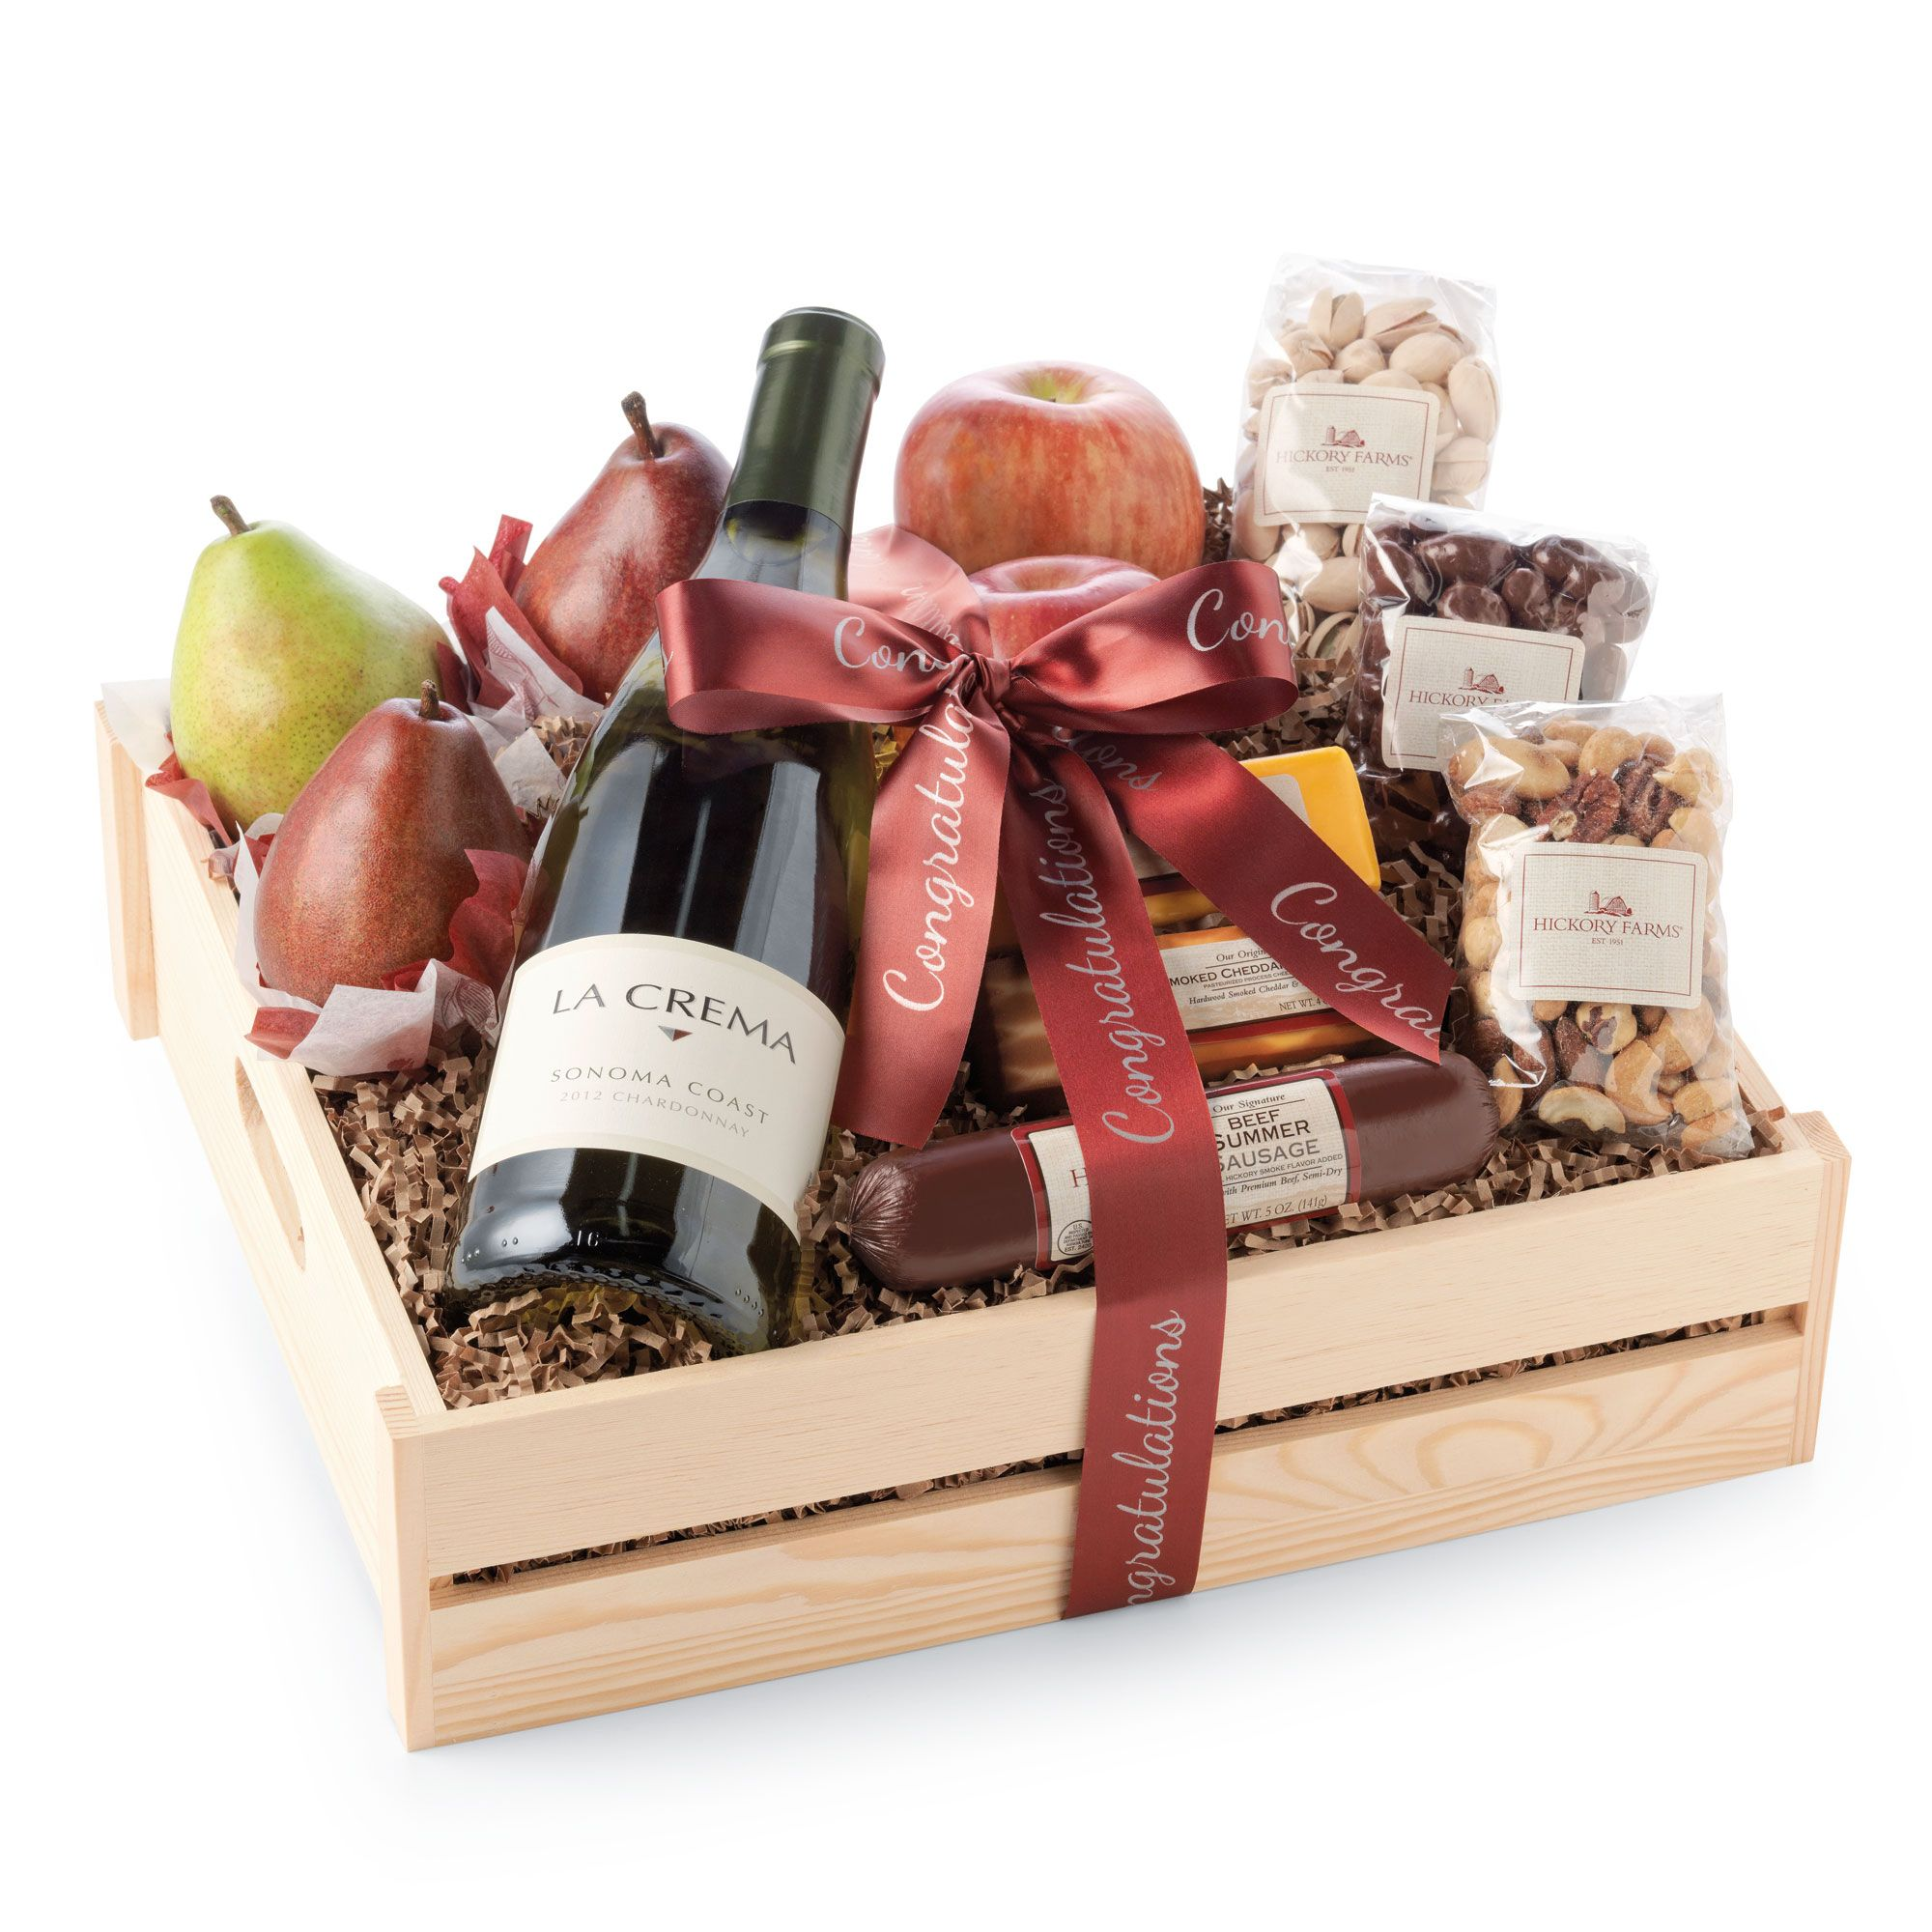 Toast The Traditions Gift Wine Gift Box Ideas Best Gift Baskets Wedding Gift Baskets